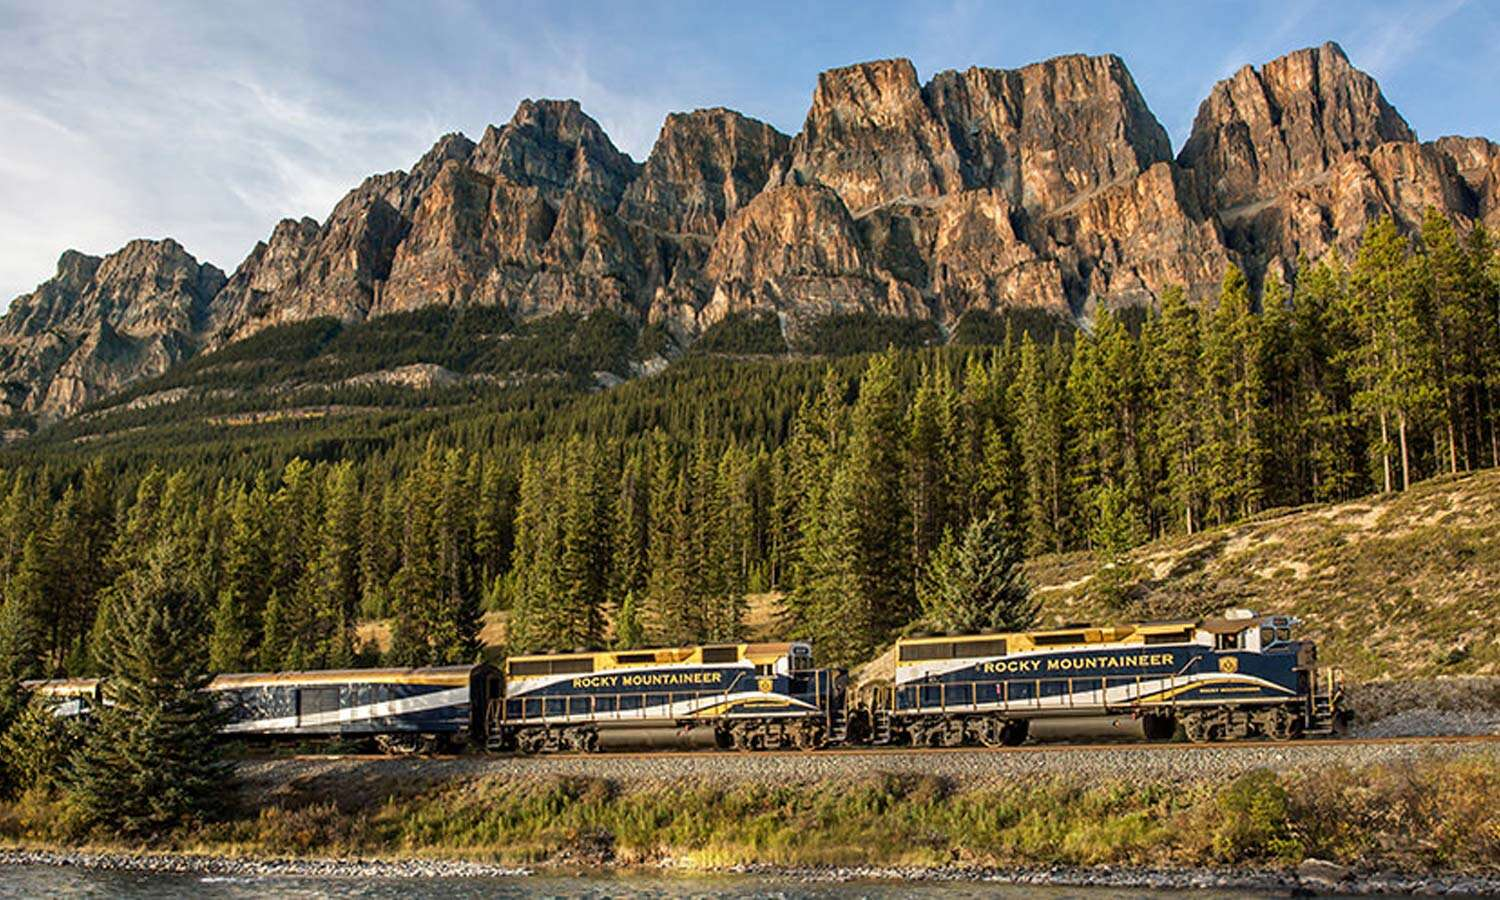 Ride the Rails through North America's Rocky Mountains in 2021